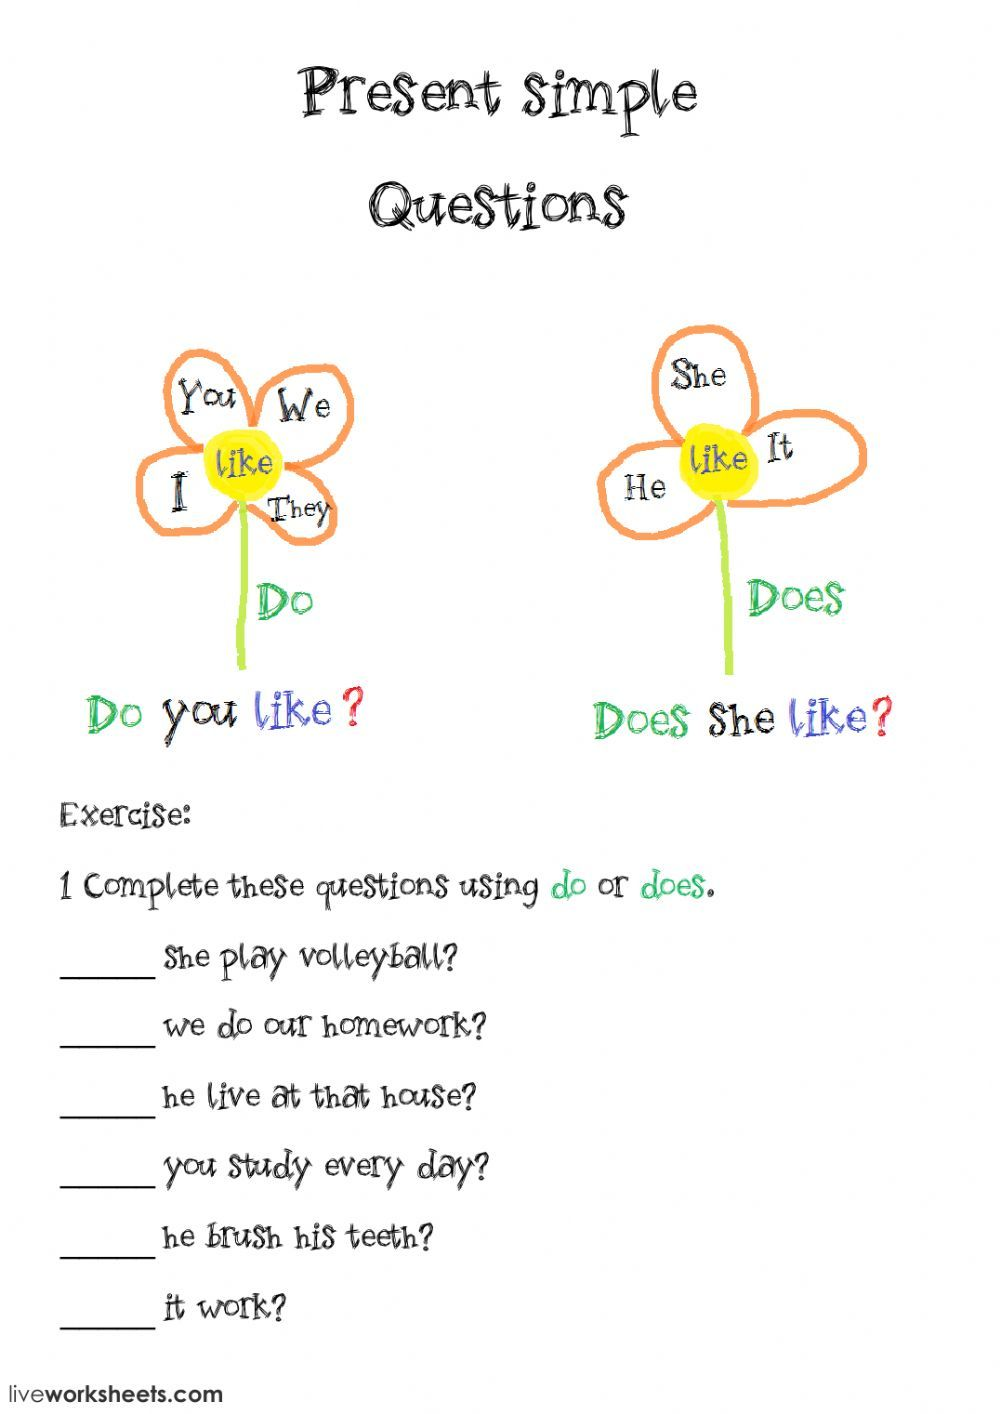 Do Or Does Interactive And Downloadable Worksheet You Can Do The Exercises Online Or Dow English Worksheets For Kids English Grammar For Kids Grammar For Kids [ 1414 x 1000 Pixel ]